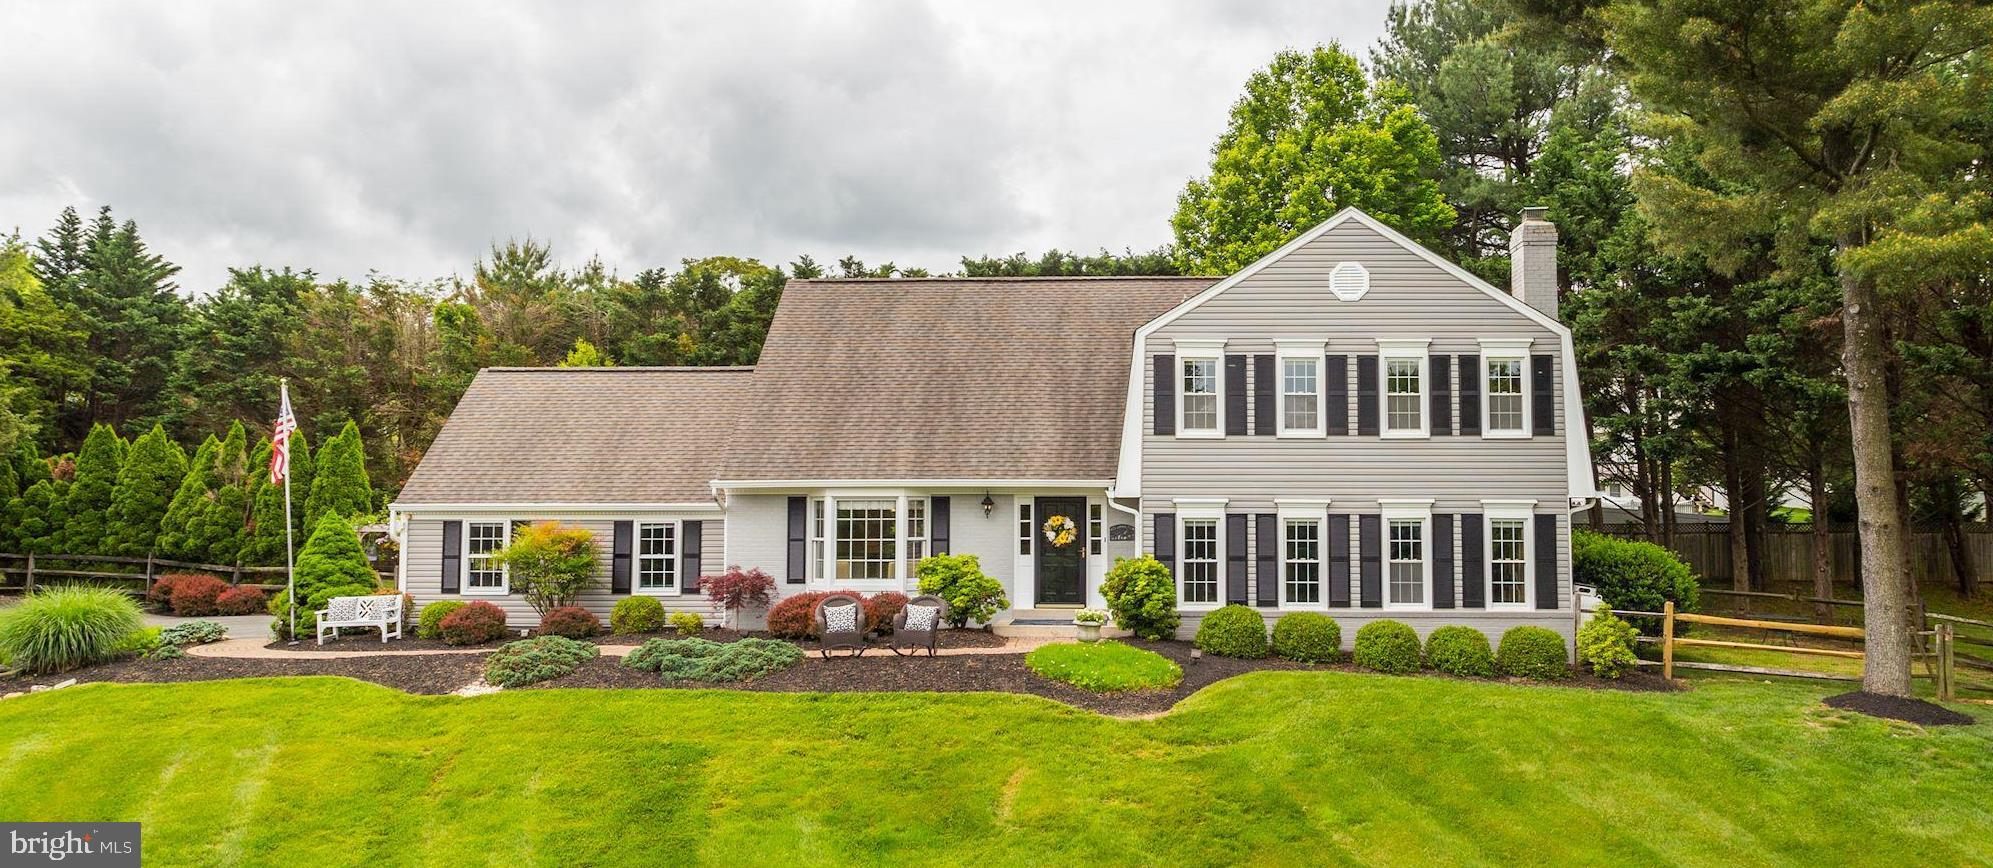 Welcome Home to this updated classic colonial located in the sought after Seneca Highlands area of D